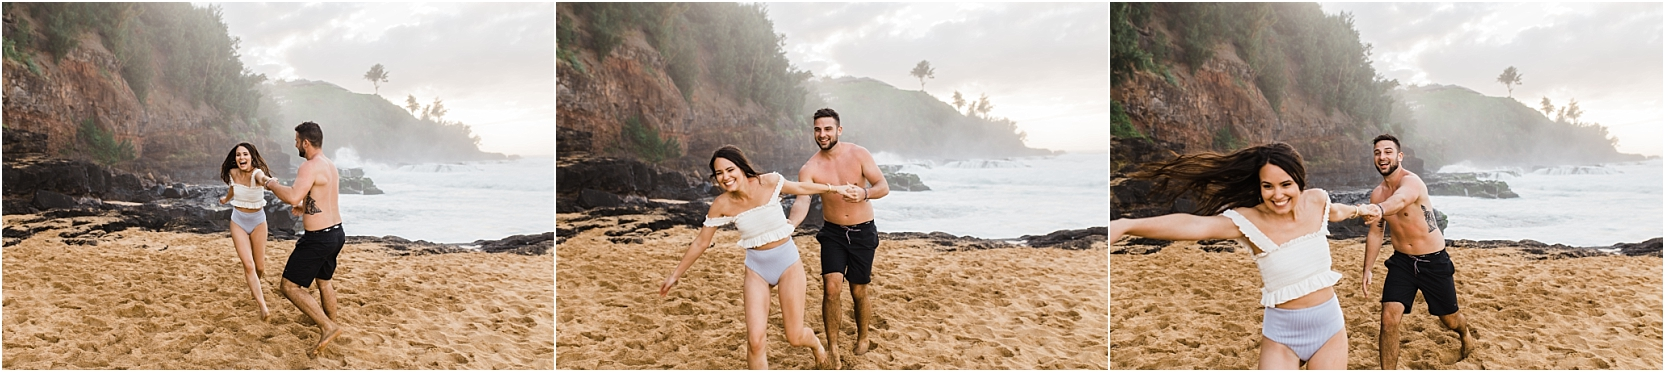 Kauai Beach Couple Session (2).jpg